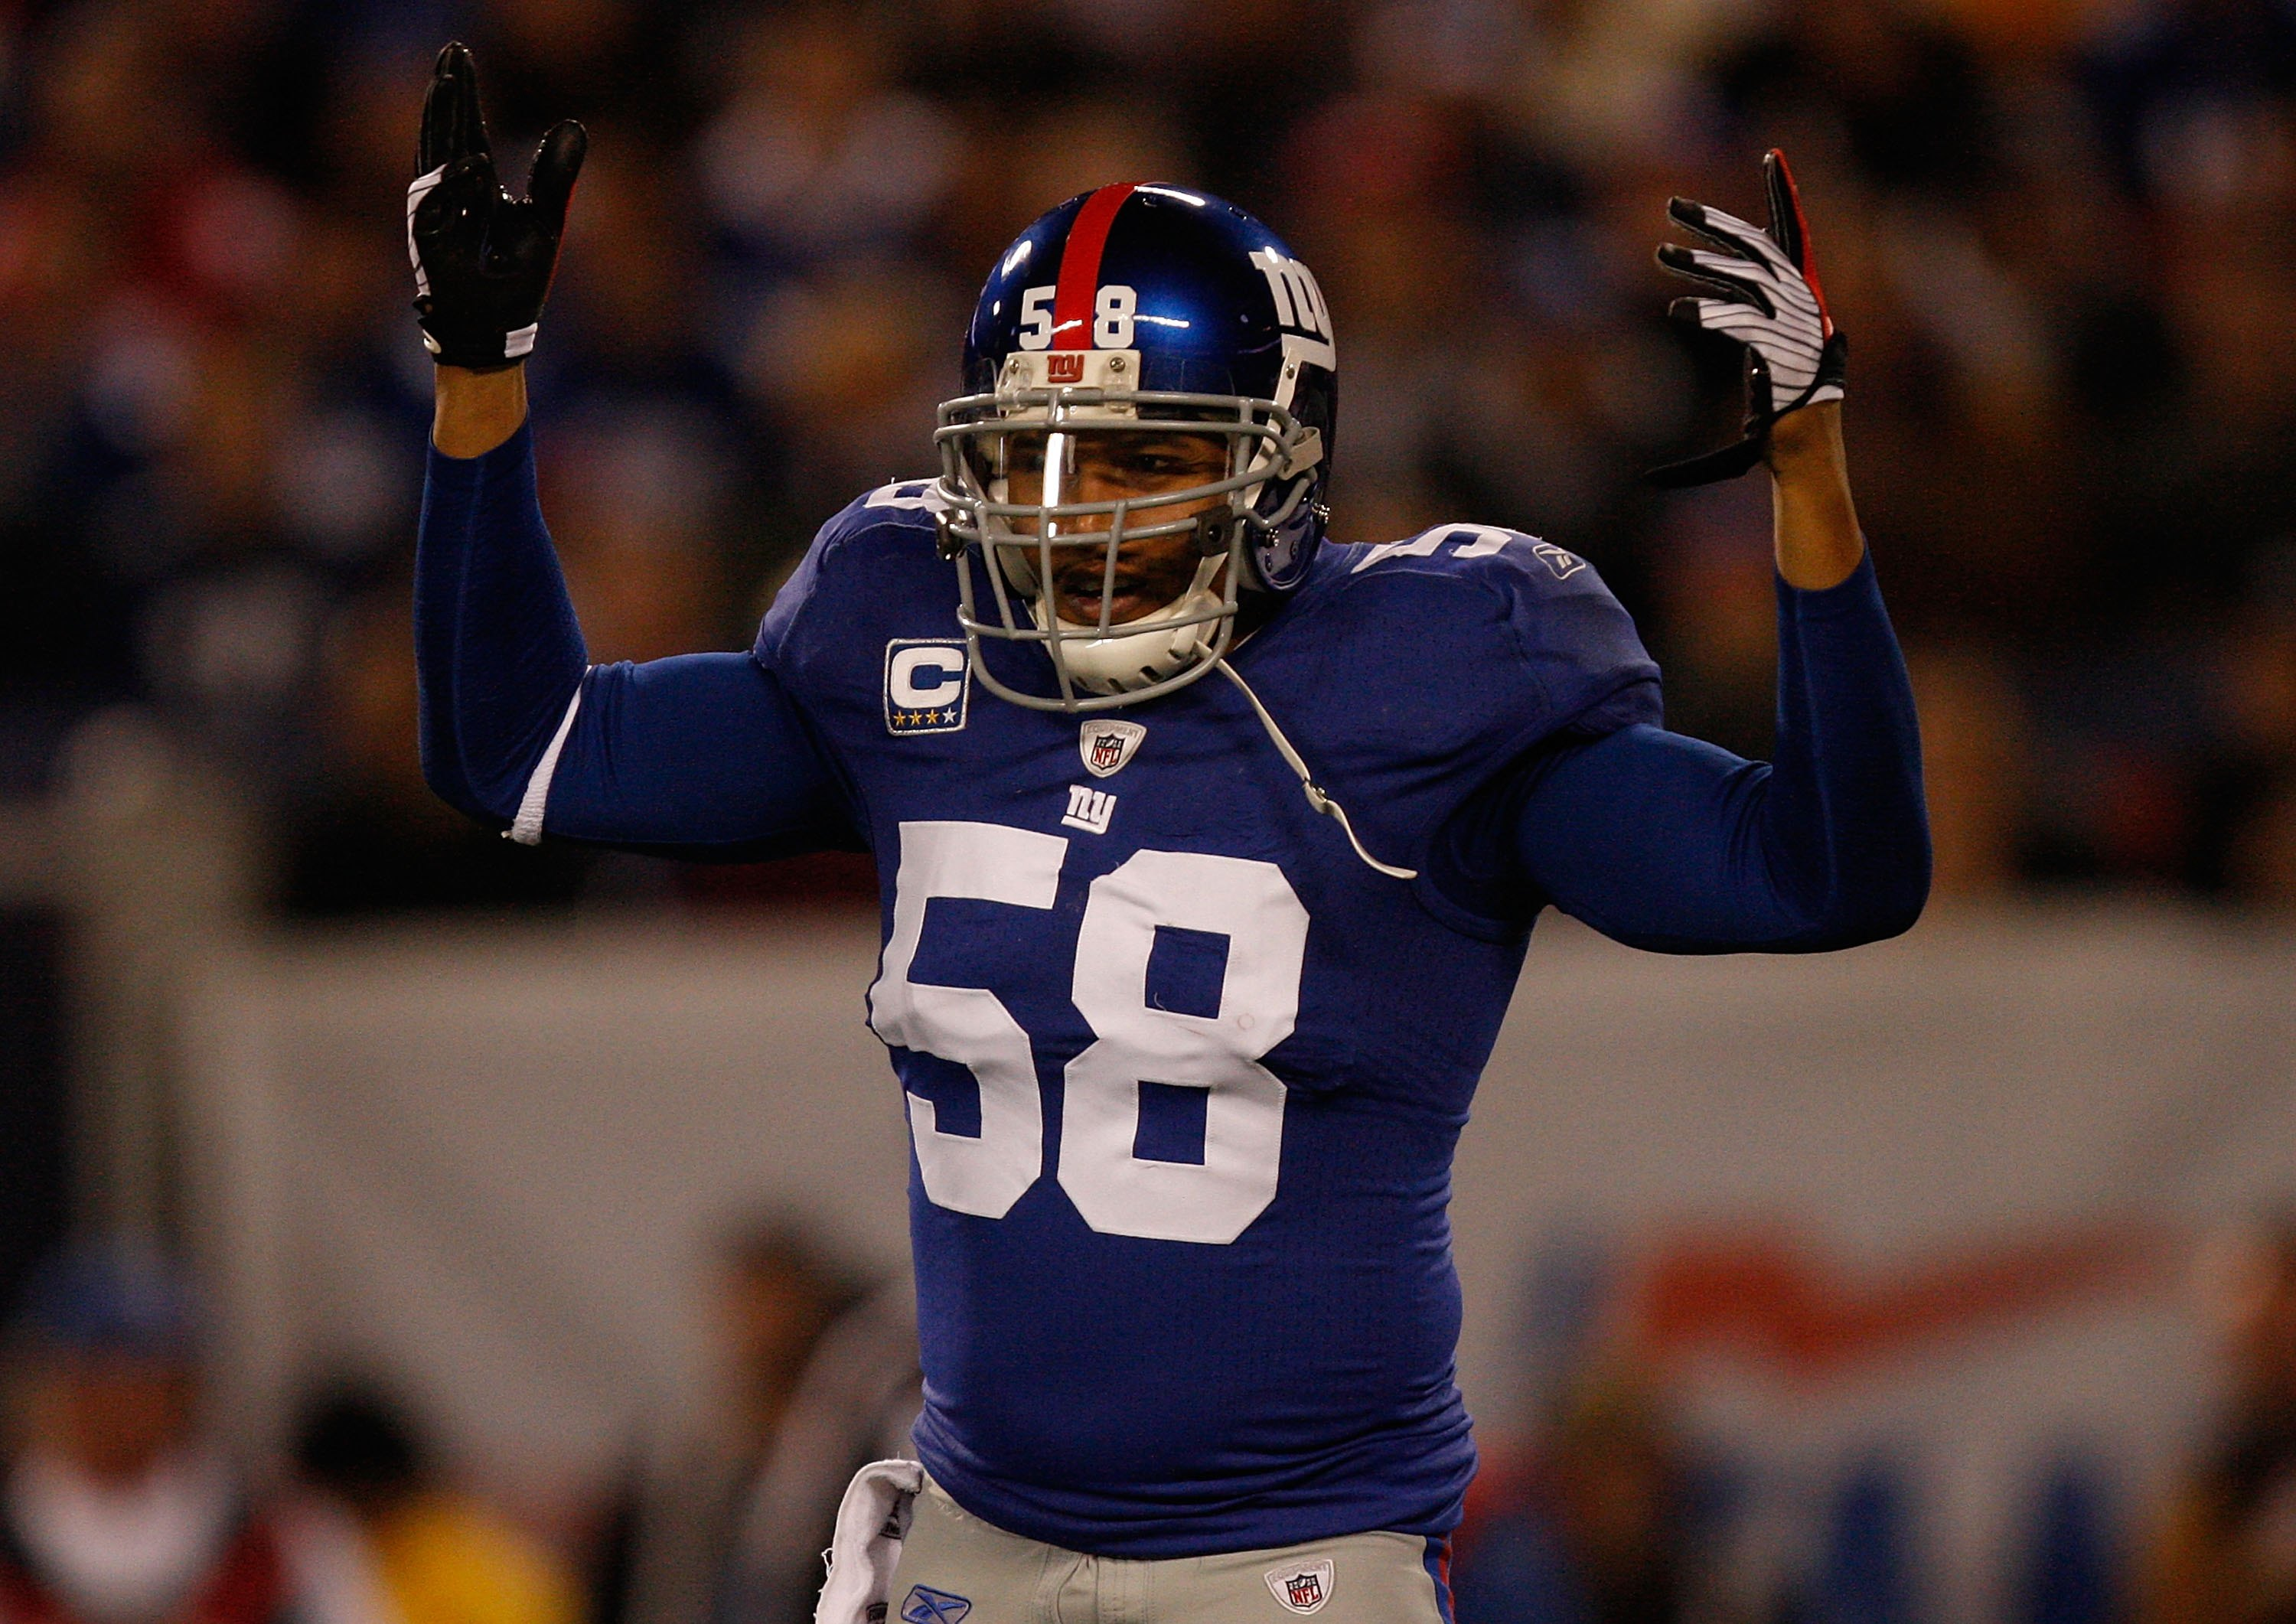 EAST RUTHERFORD, NJ - OCTOBER 25:  Antonio Pierce #58 of the New York Giants gets the crowd going against the Arizona Cardinals on October 25, 2009 at Giants Stadium in East Rutherford, New Jersey.  (Photo by Jared Wickerham/Getty Images)